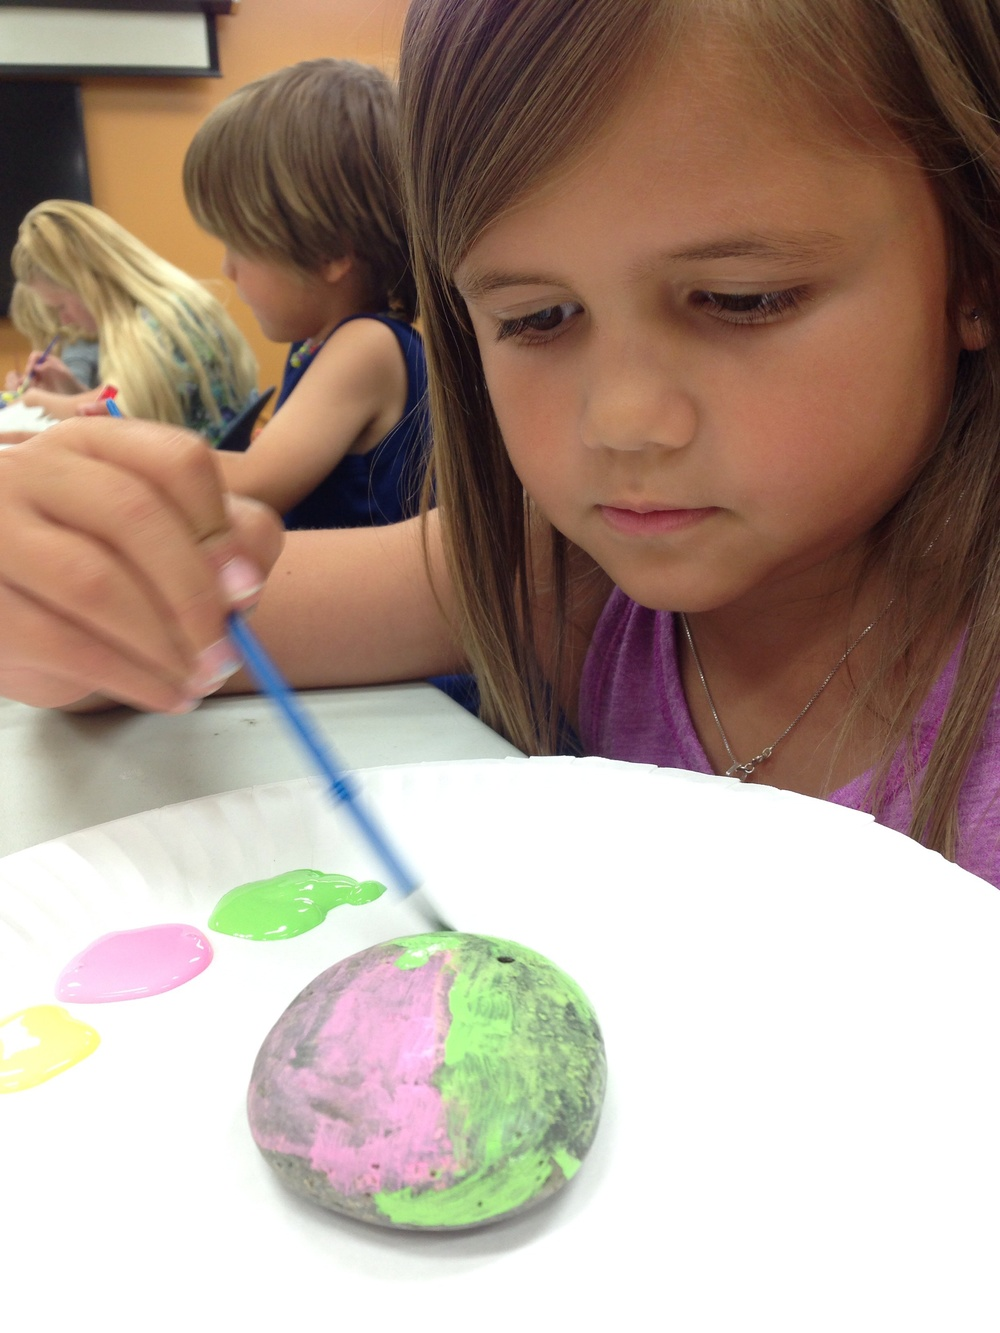 Rock painting at a local library in Kingman, Arizona.